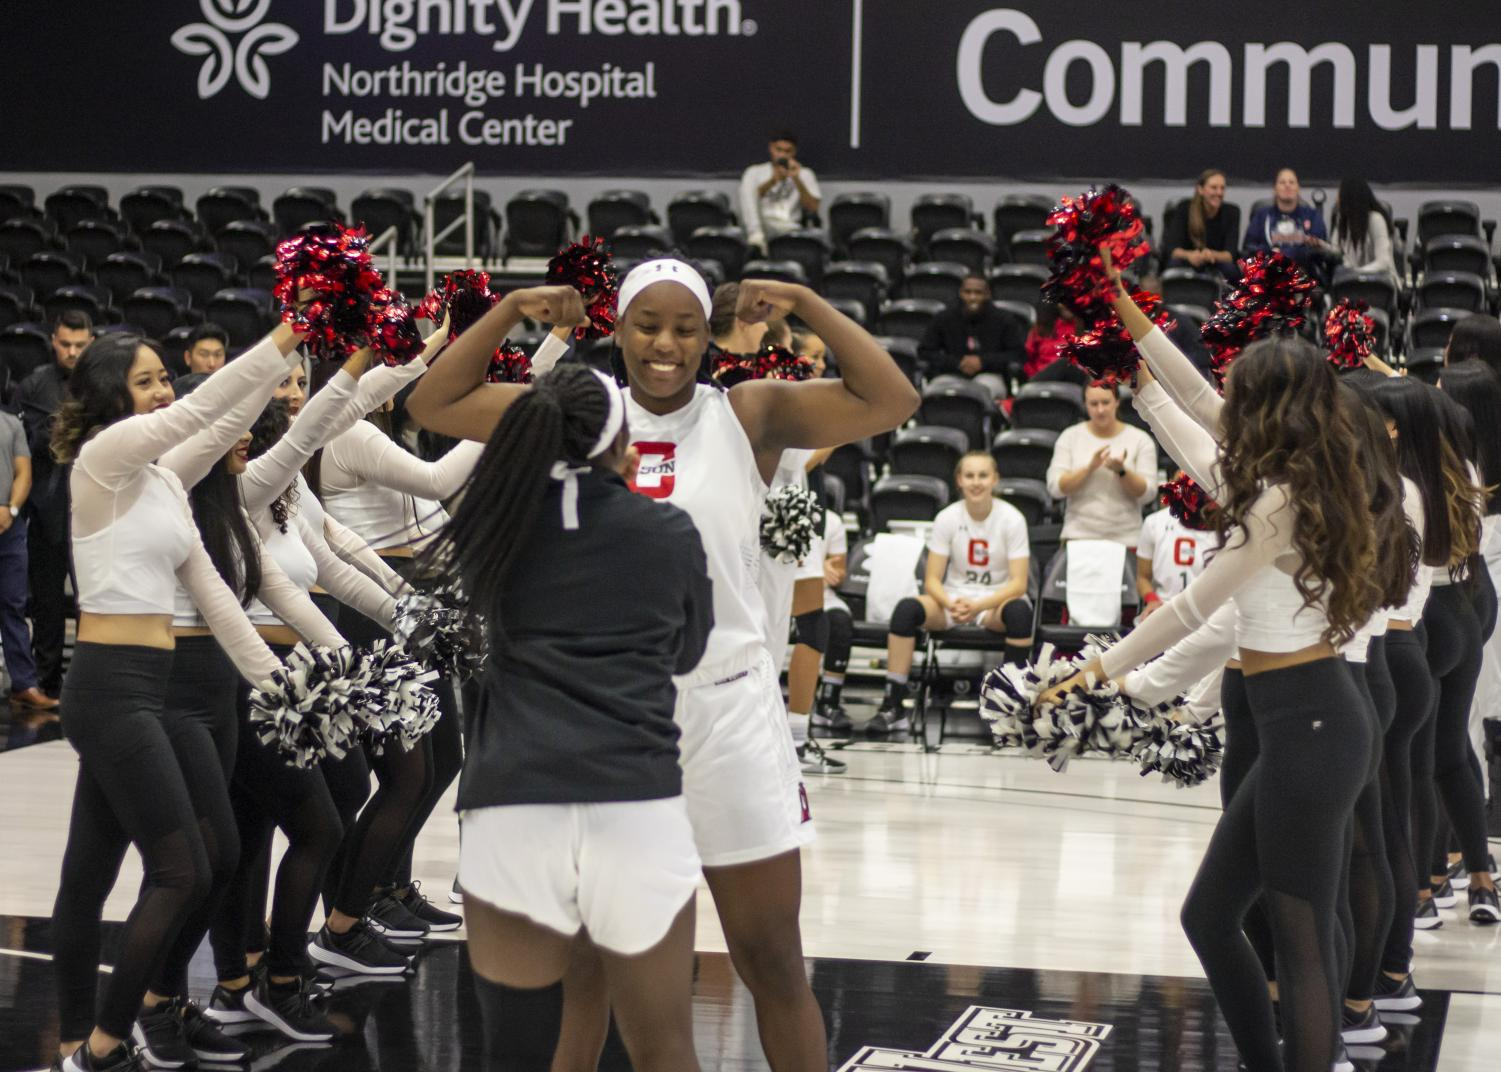 Redshirt senior De'Jionae Calloway walks down the tunnel of cheerleaders during the pregame celebration of the women's basketball exhibition game against The Master's University on Oct. 29. Photo credit: Tim Strong